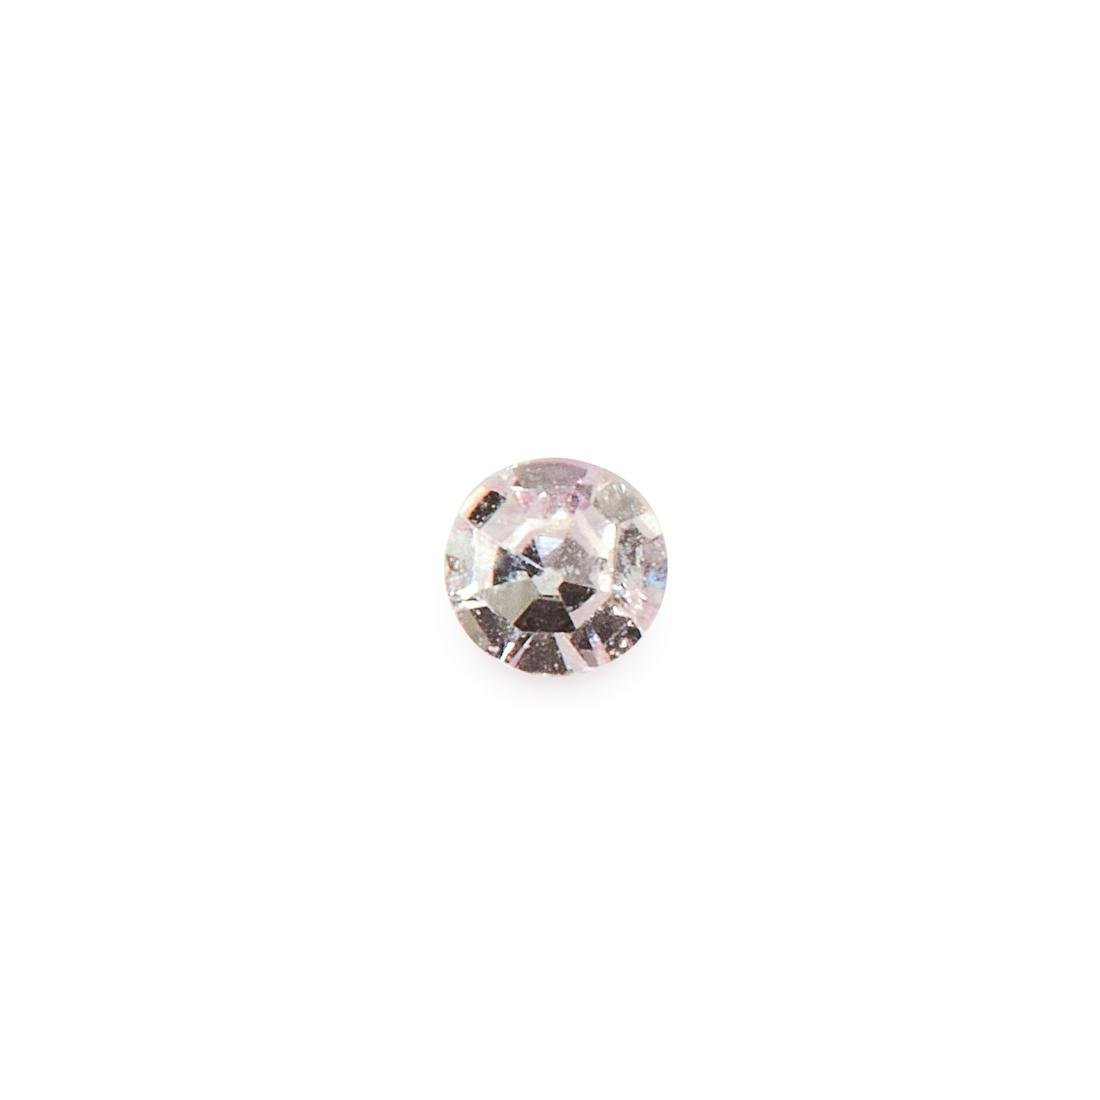 AN UNMOUNTED PINK DIAMOND round brilliant cut, of 0.04